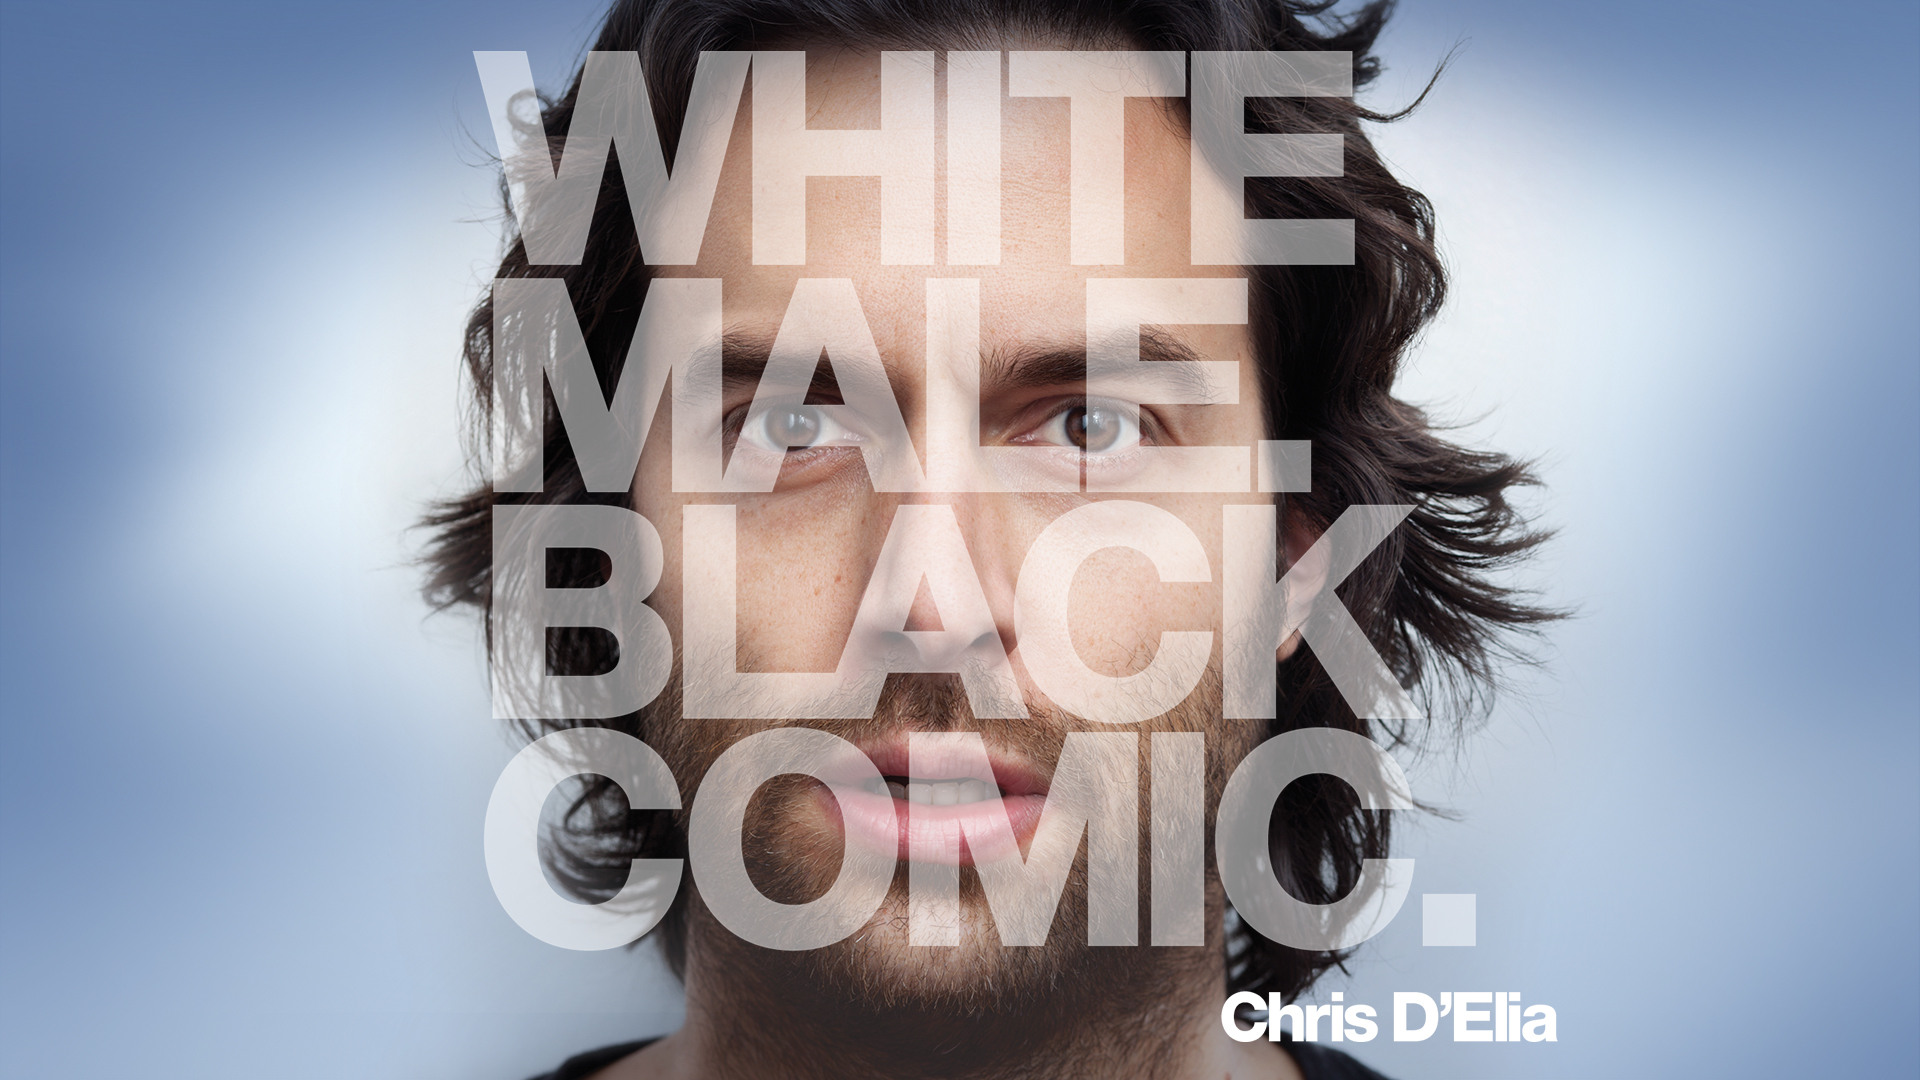 CHRIS D'ELIA - WHITE MALE. BLACK COMIC